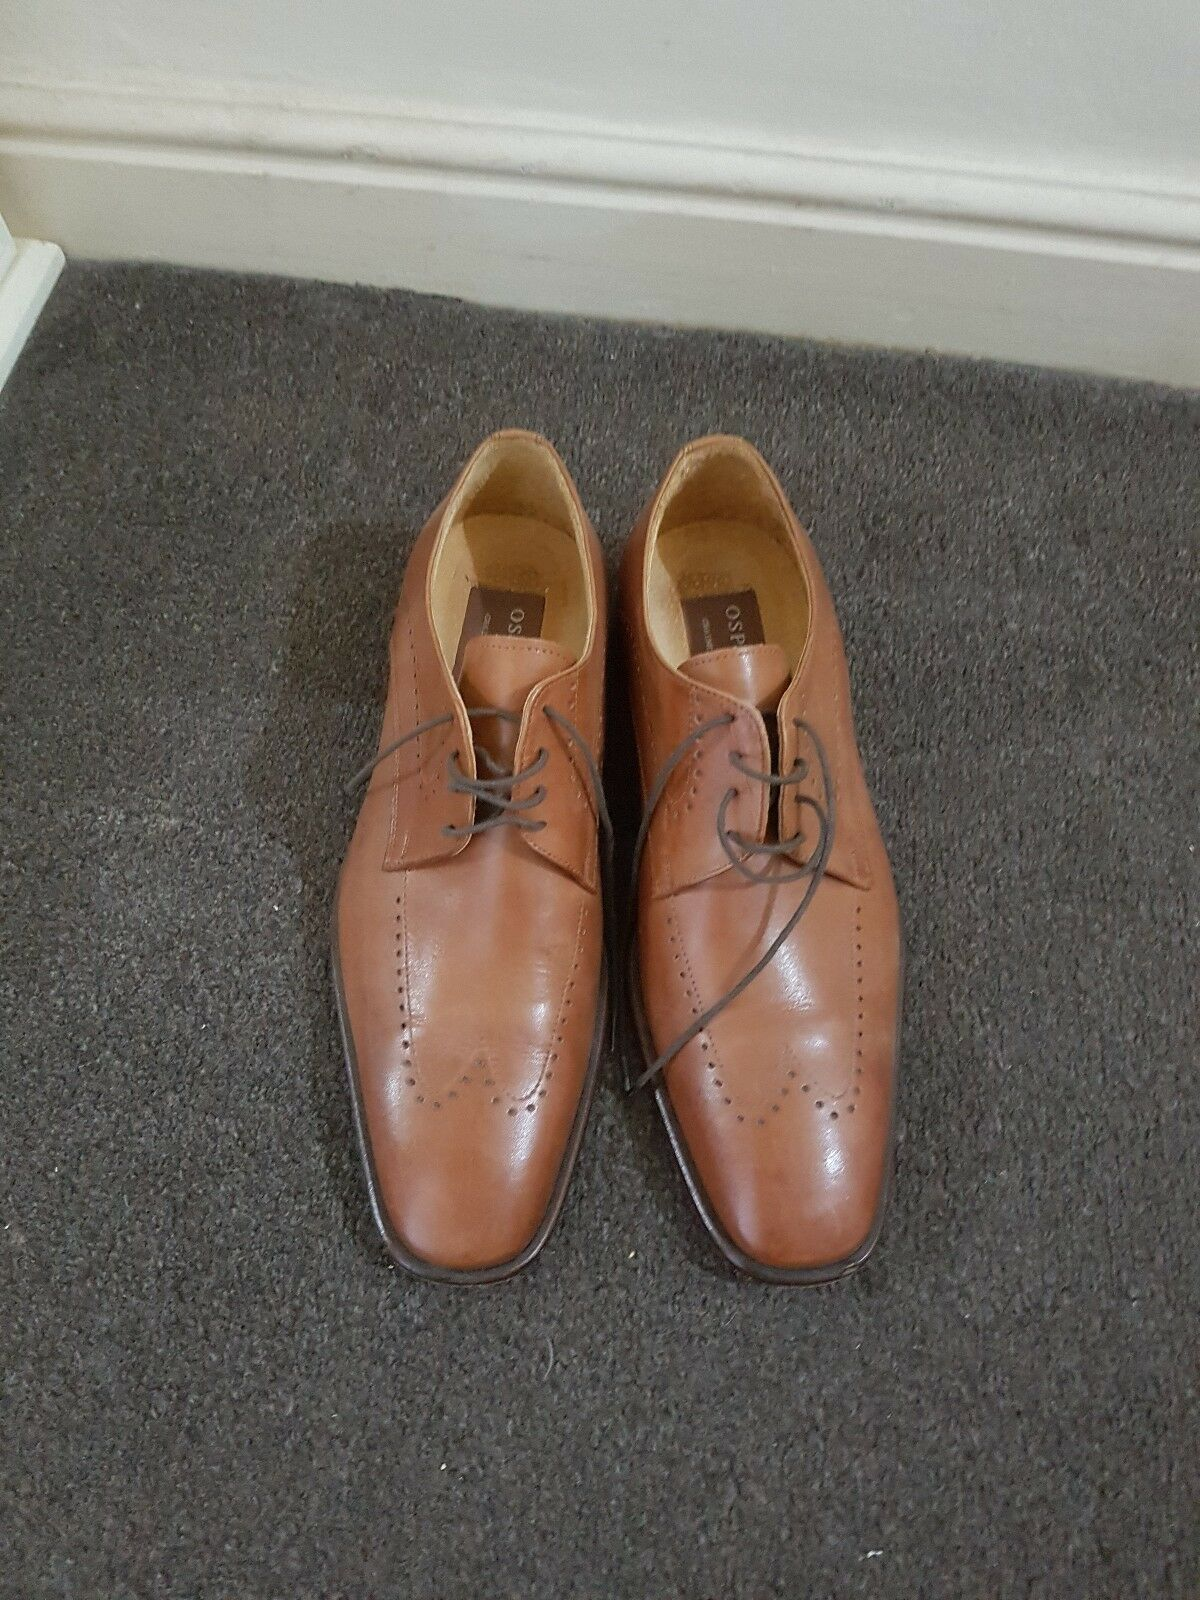 OSPREY GRAEME ELLISDON MEN'S TAN BROWN LEATHER LACE BROGUES SMART SHOES 8